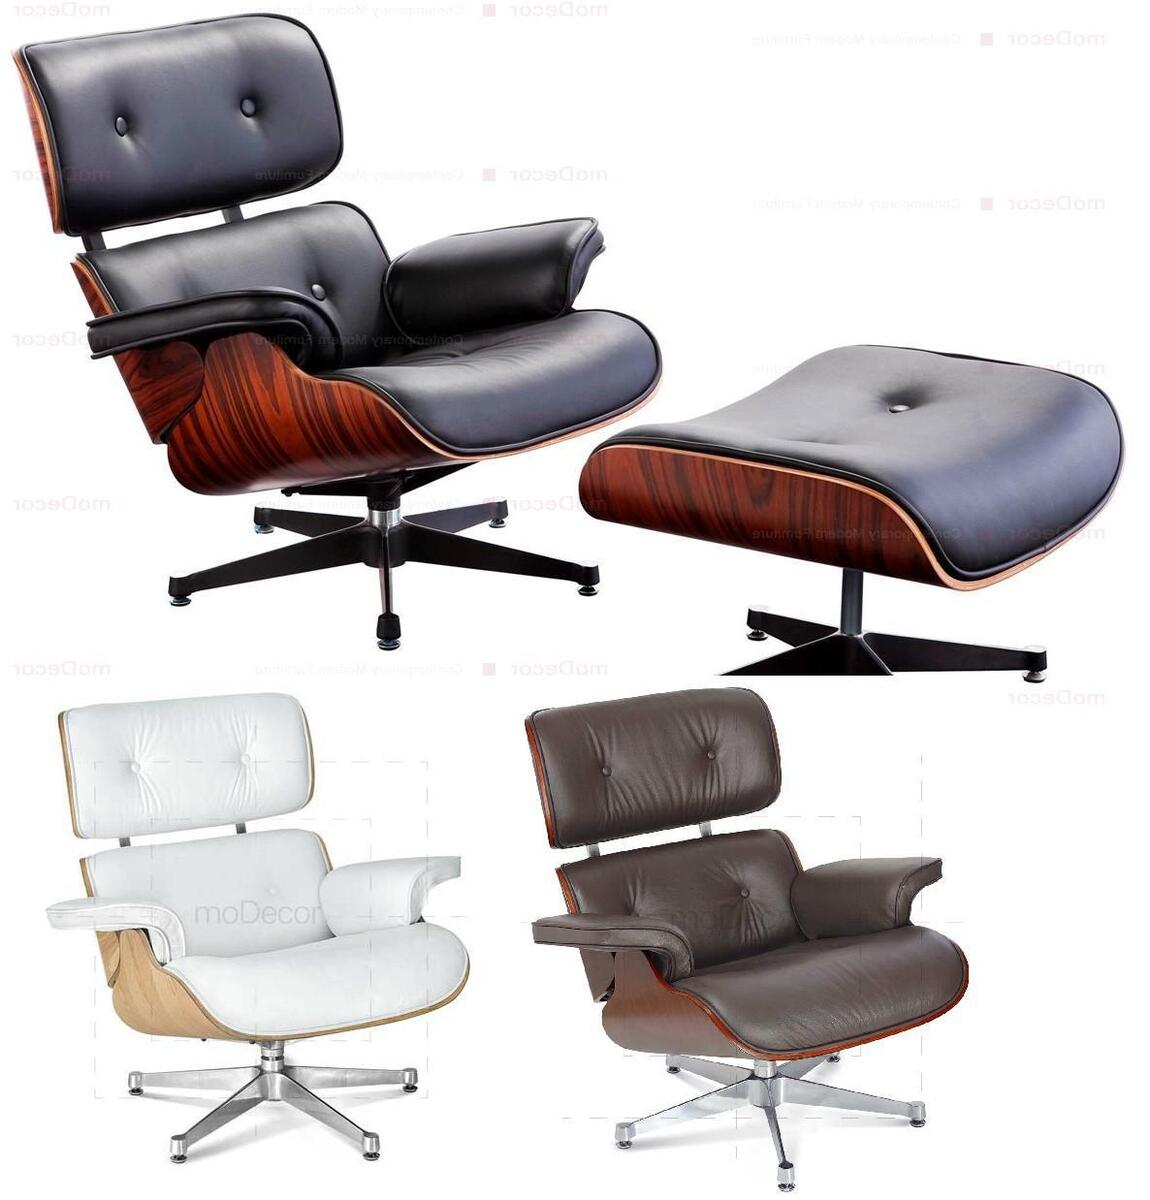 Surprising Charles Eames Lounge Chair And Ottoman Black White Brown Alphanode Cool Chair Designs And Ideas Alphanodeonline